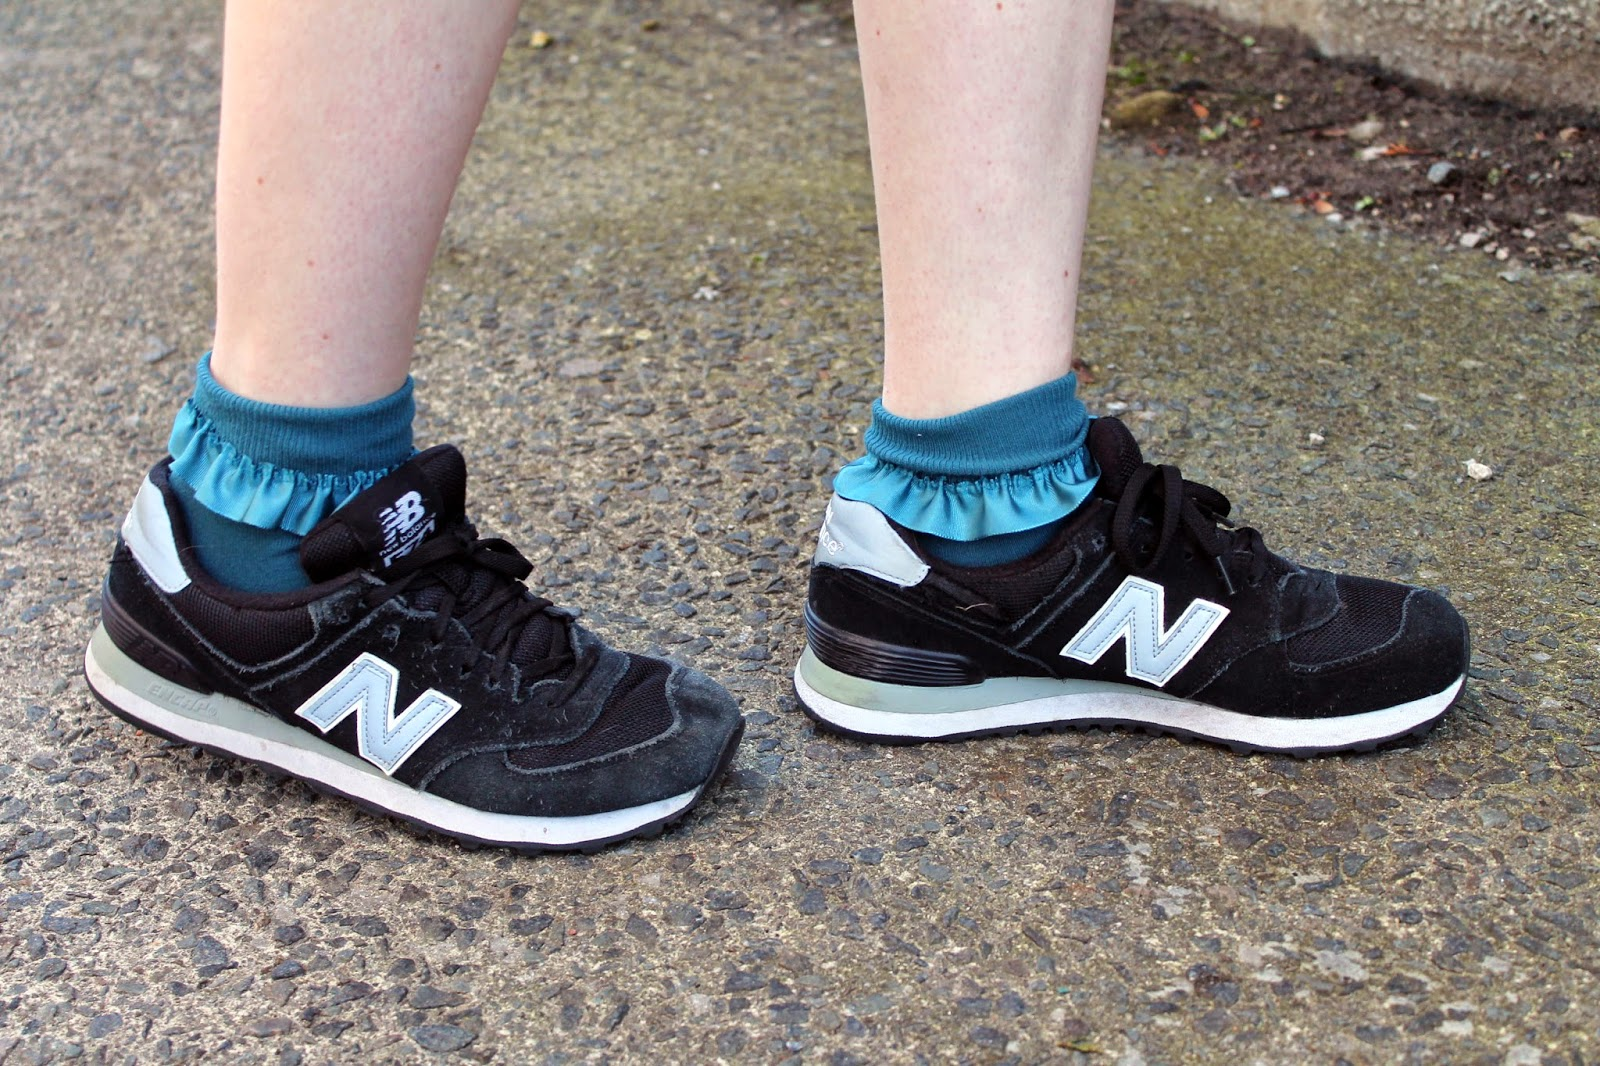 bank ankle socks with frill and new balance 574s